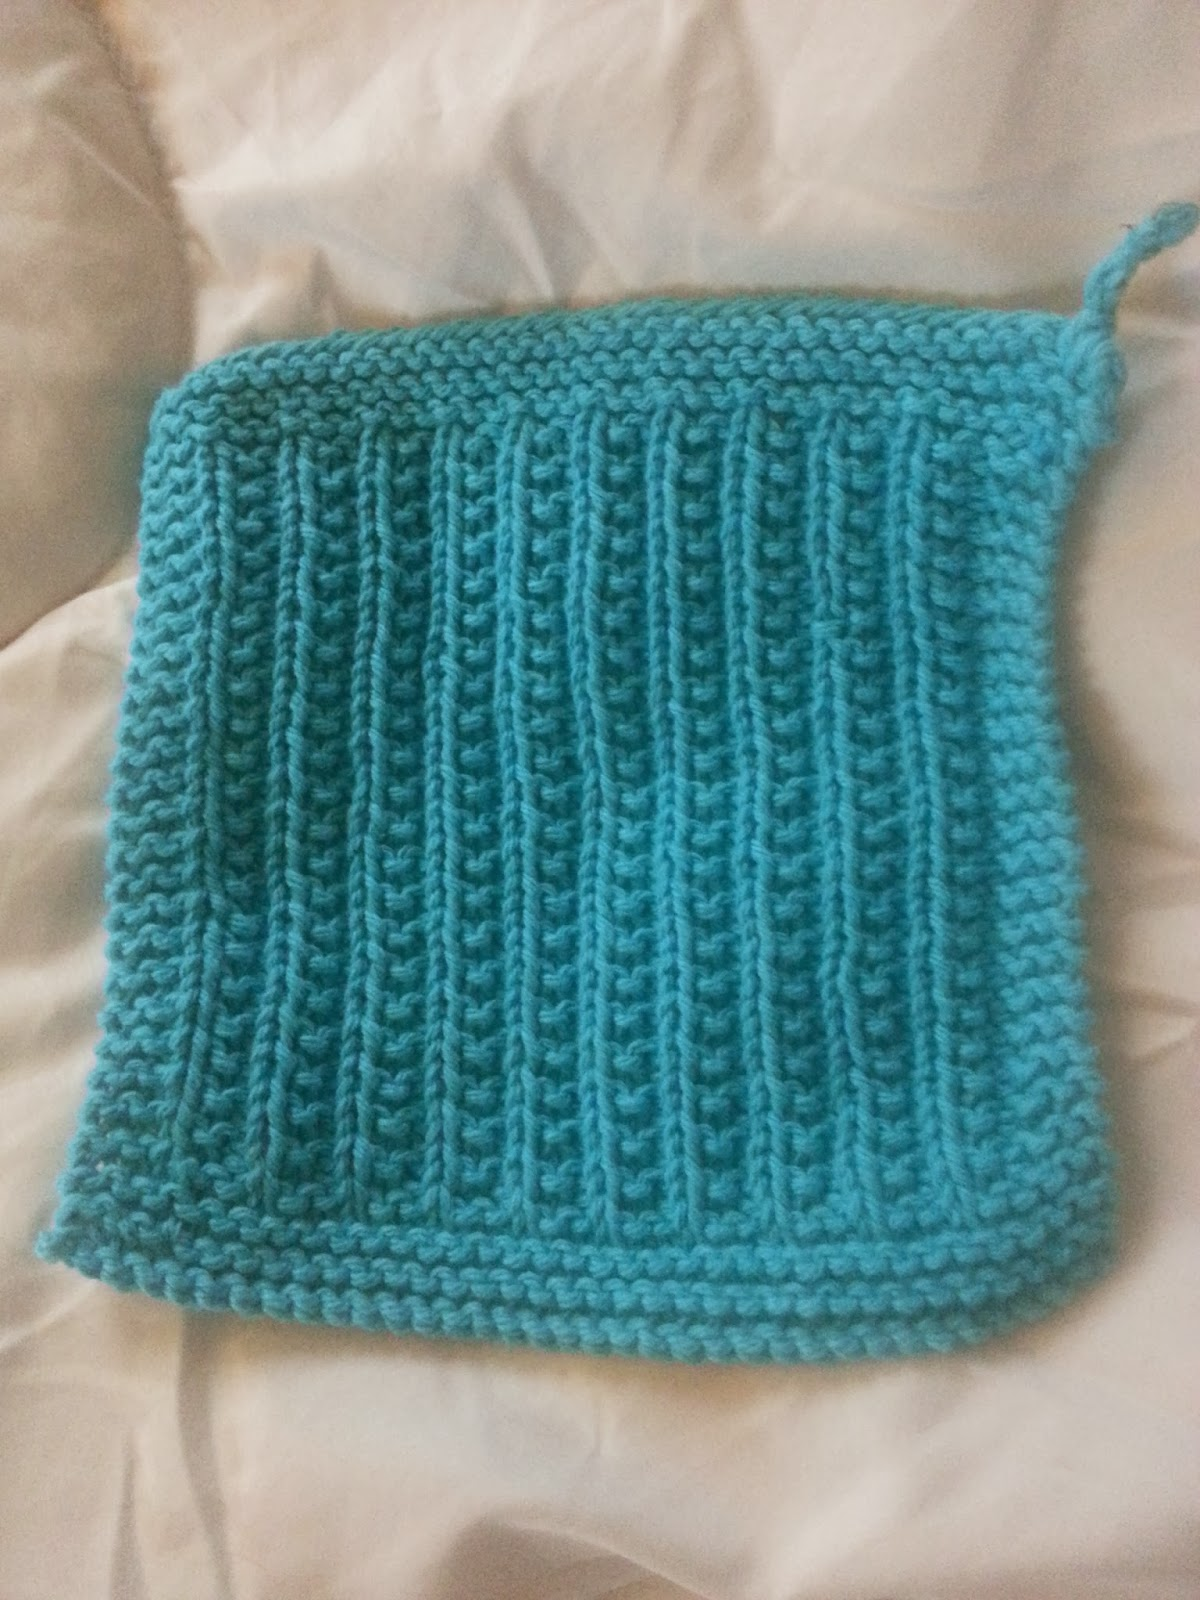 Sewing to Bliss: Cluster Rib Dishcloth Knitting Pattern